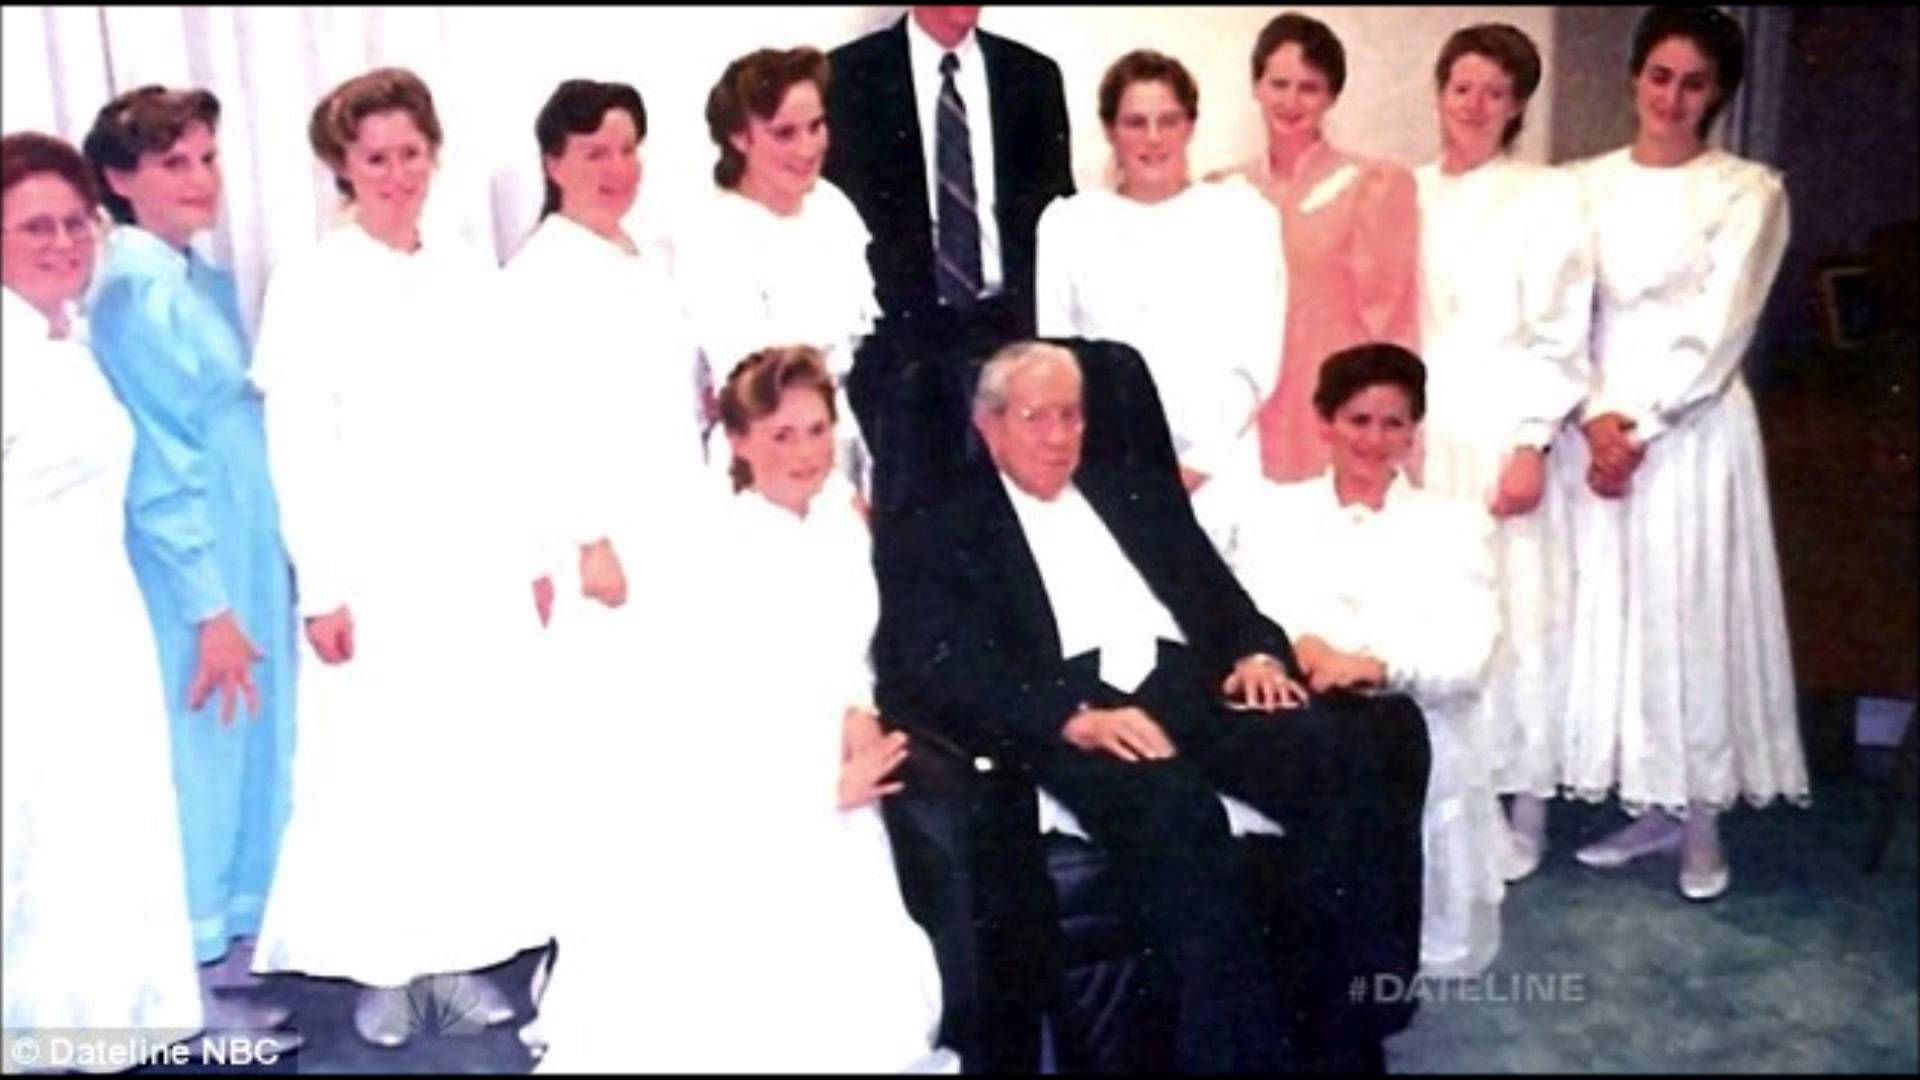 19 things you probably dont know about flds polygamists - HD1920×1080